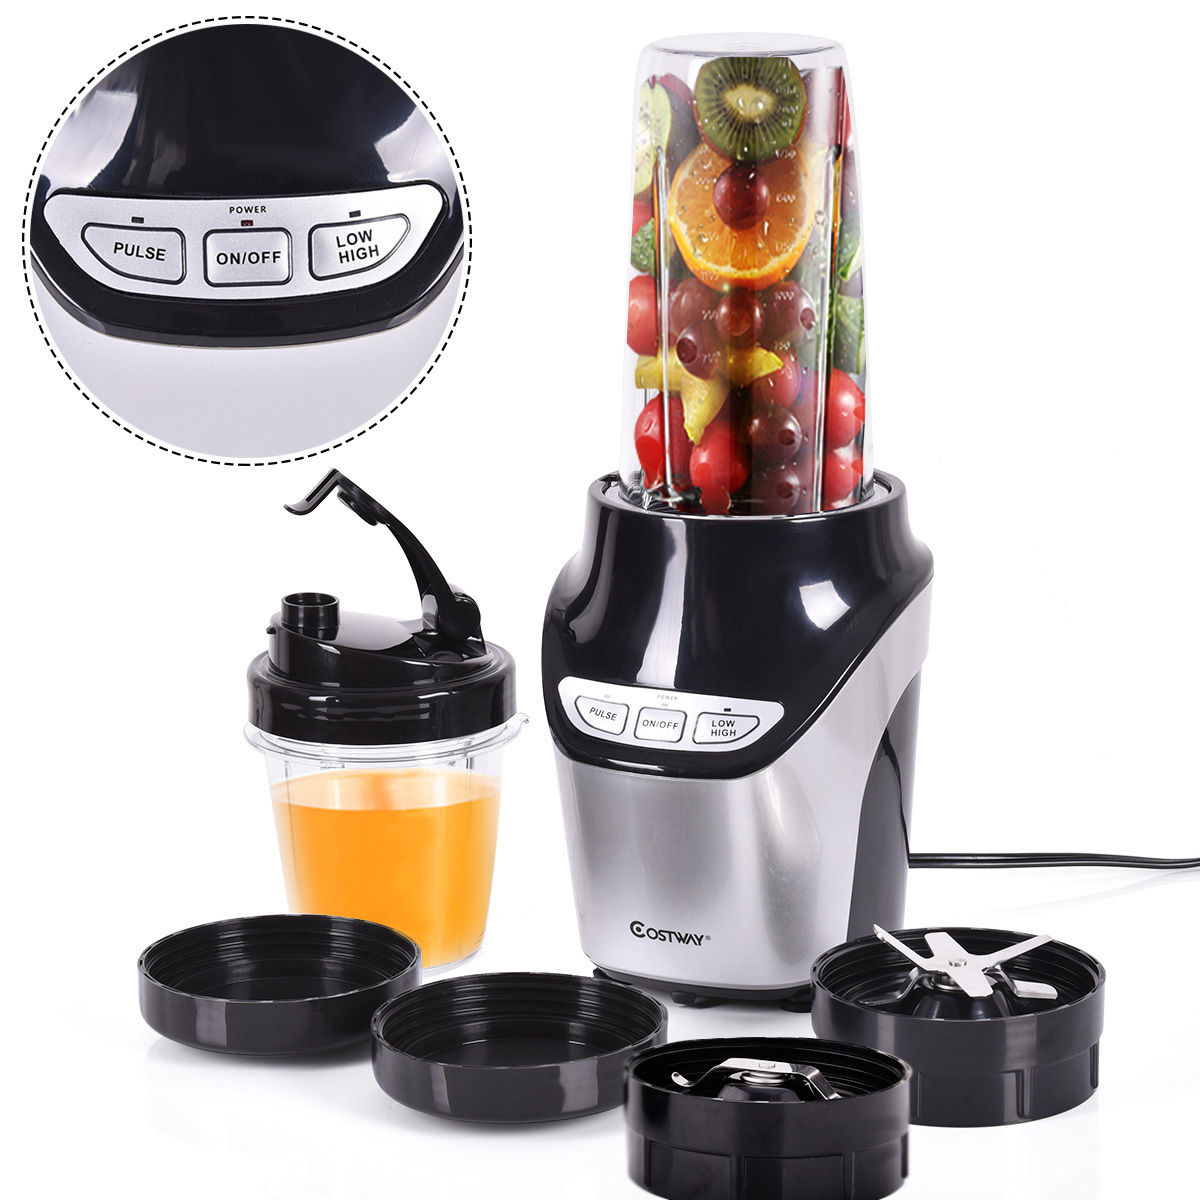 Costway Electric Blender Fruit Mixer Grinder Fruit Vegetable Processor 1000W 2 Speed